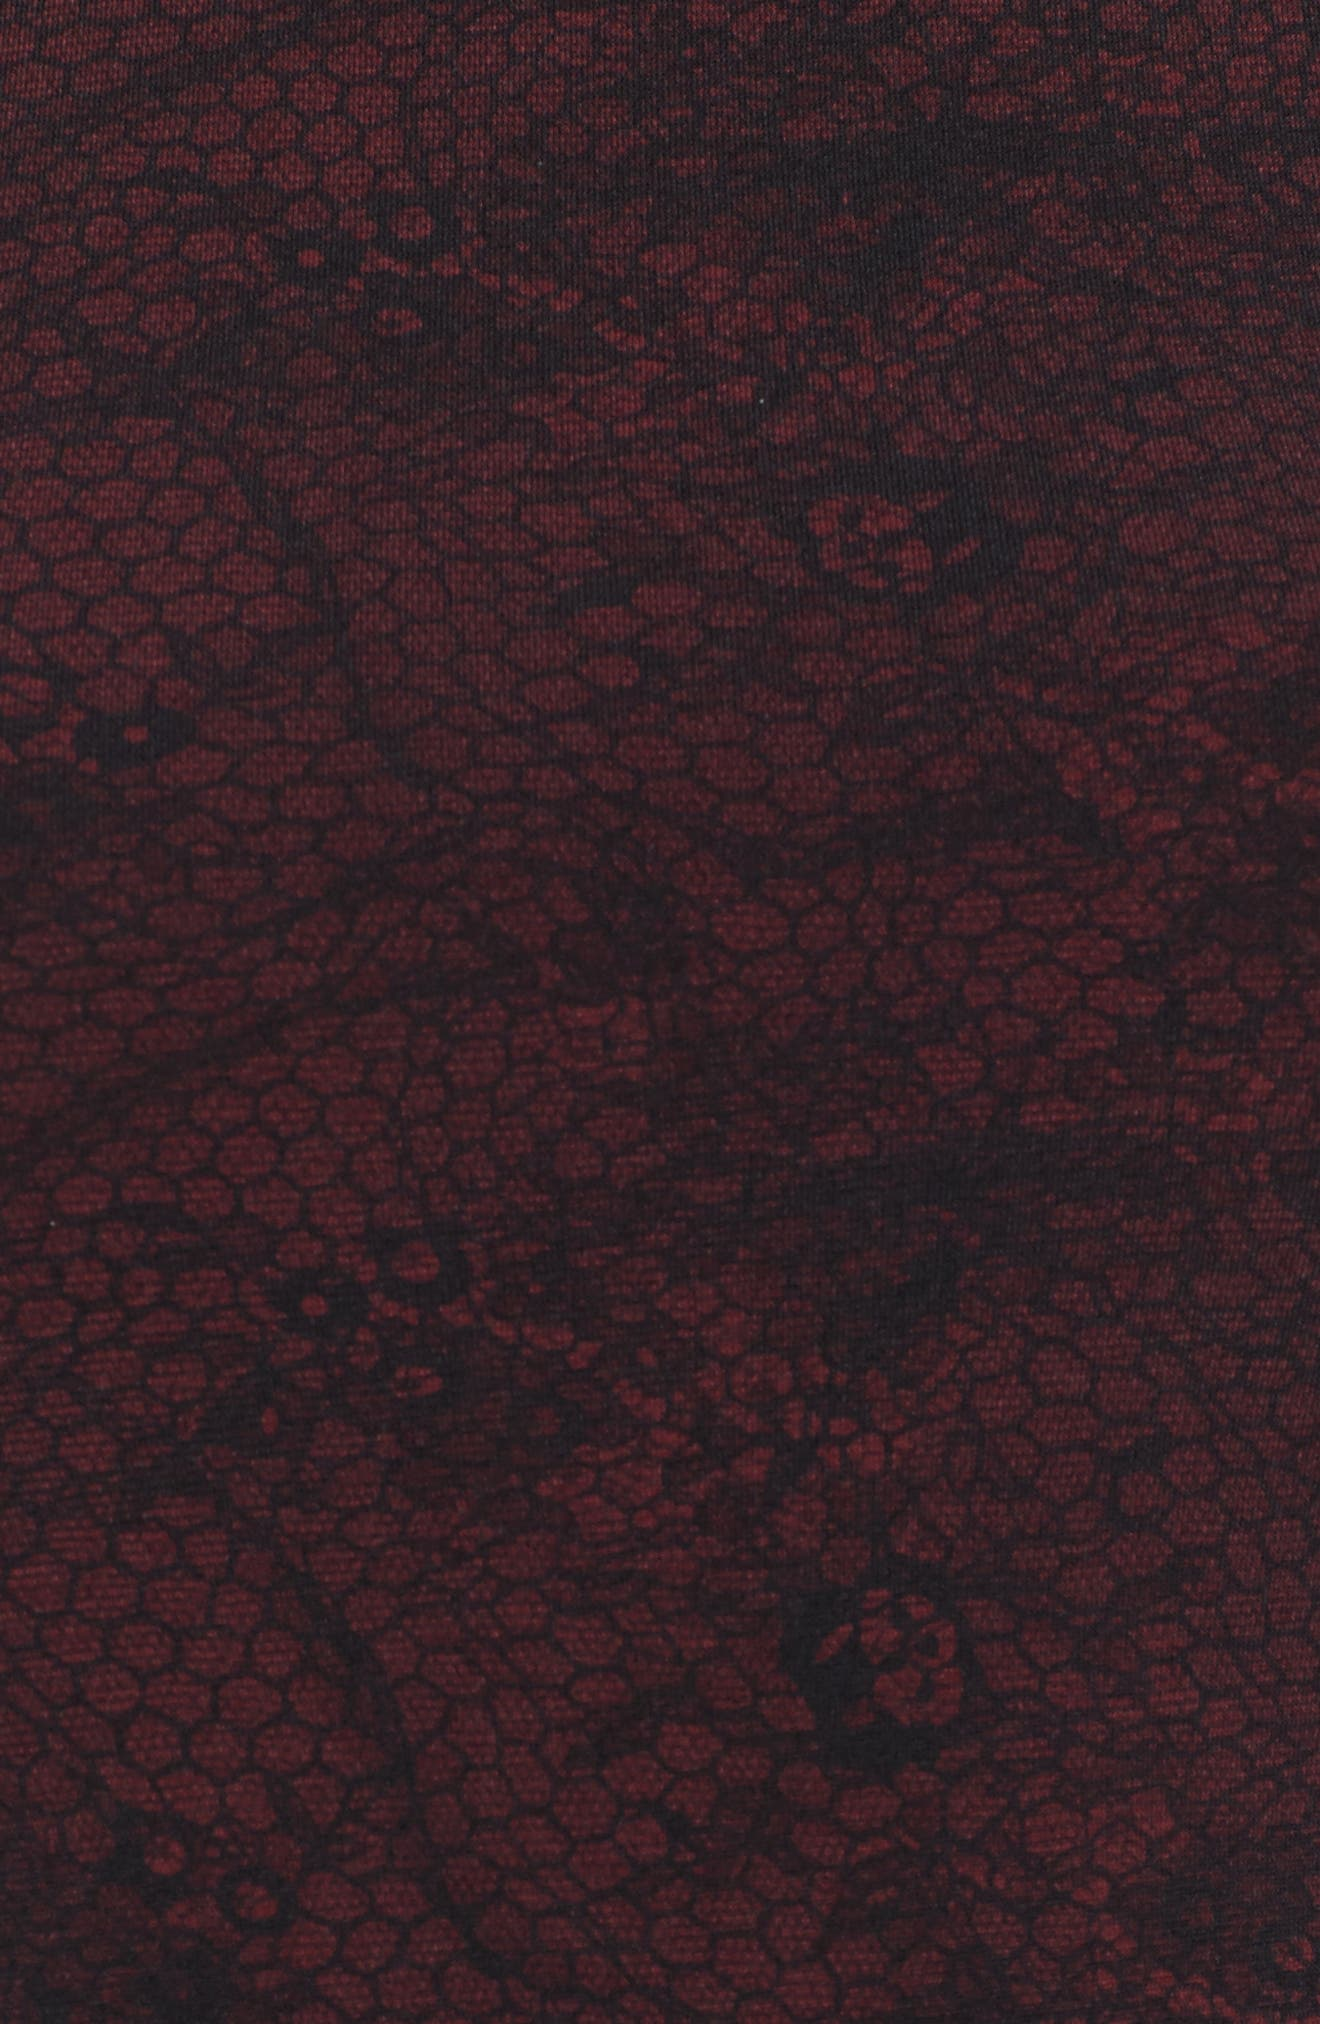 Floral Mesh Dress,                             Alternate thumbnail 5, color,                             Merlot/Black